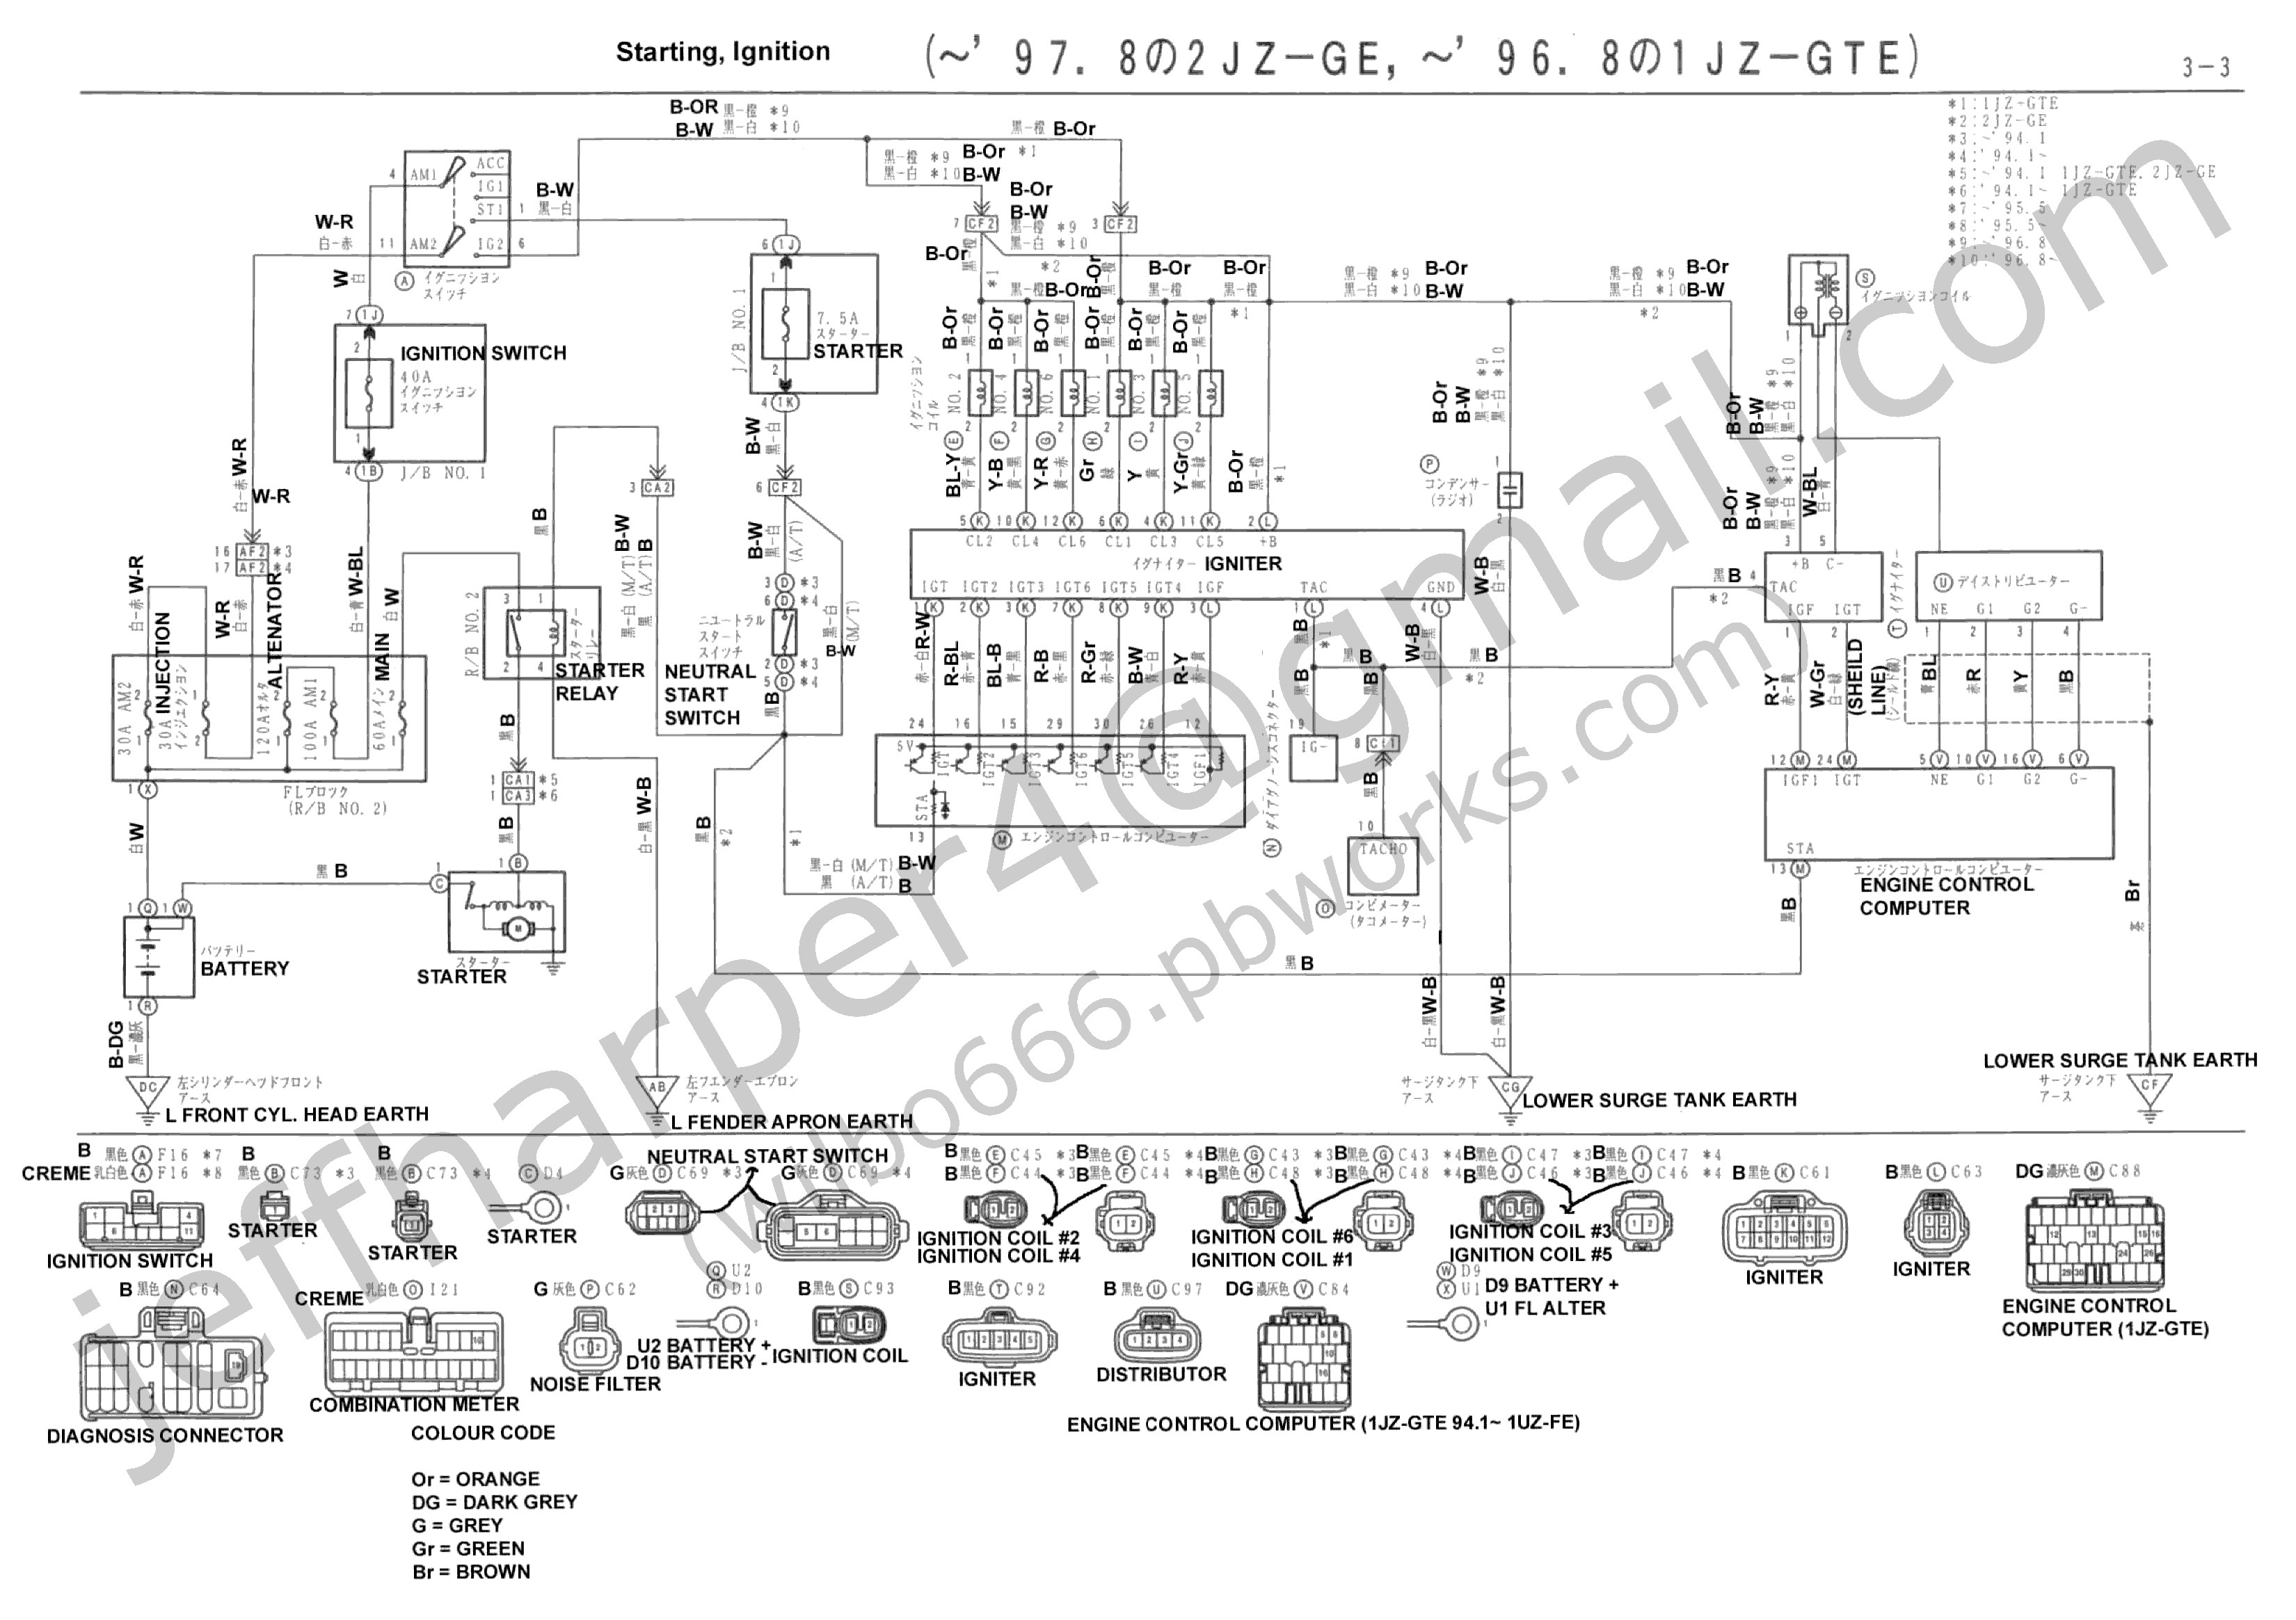 Engine Coolant Temperature Sensor Wiring Diagram Wilbo666 1jz Gte Jzz30  soarer Engine Wiring Of Engine Coolant